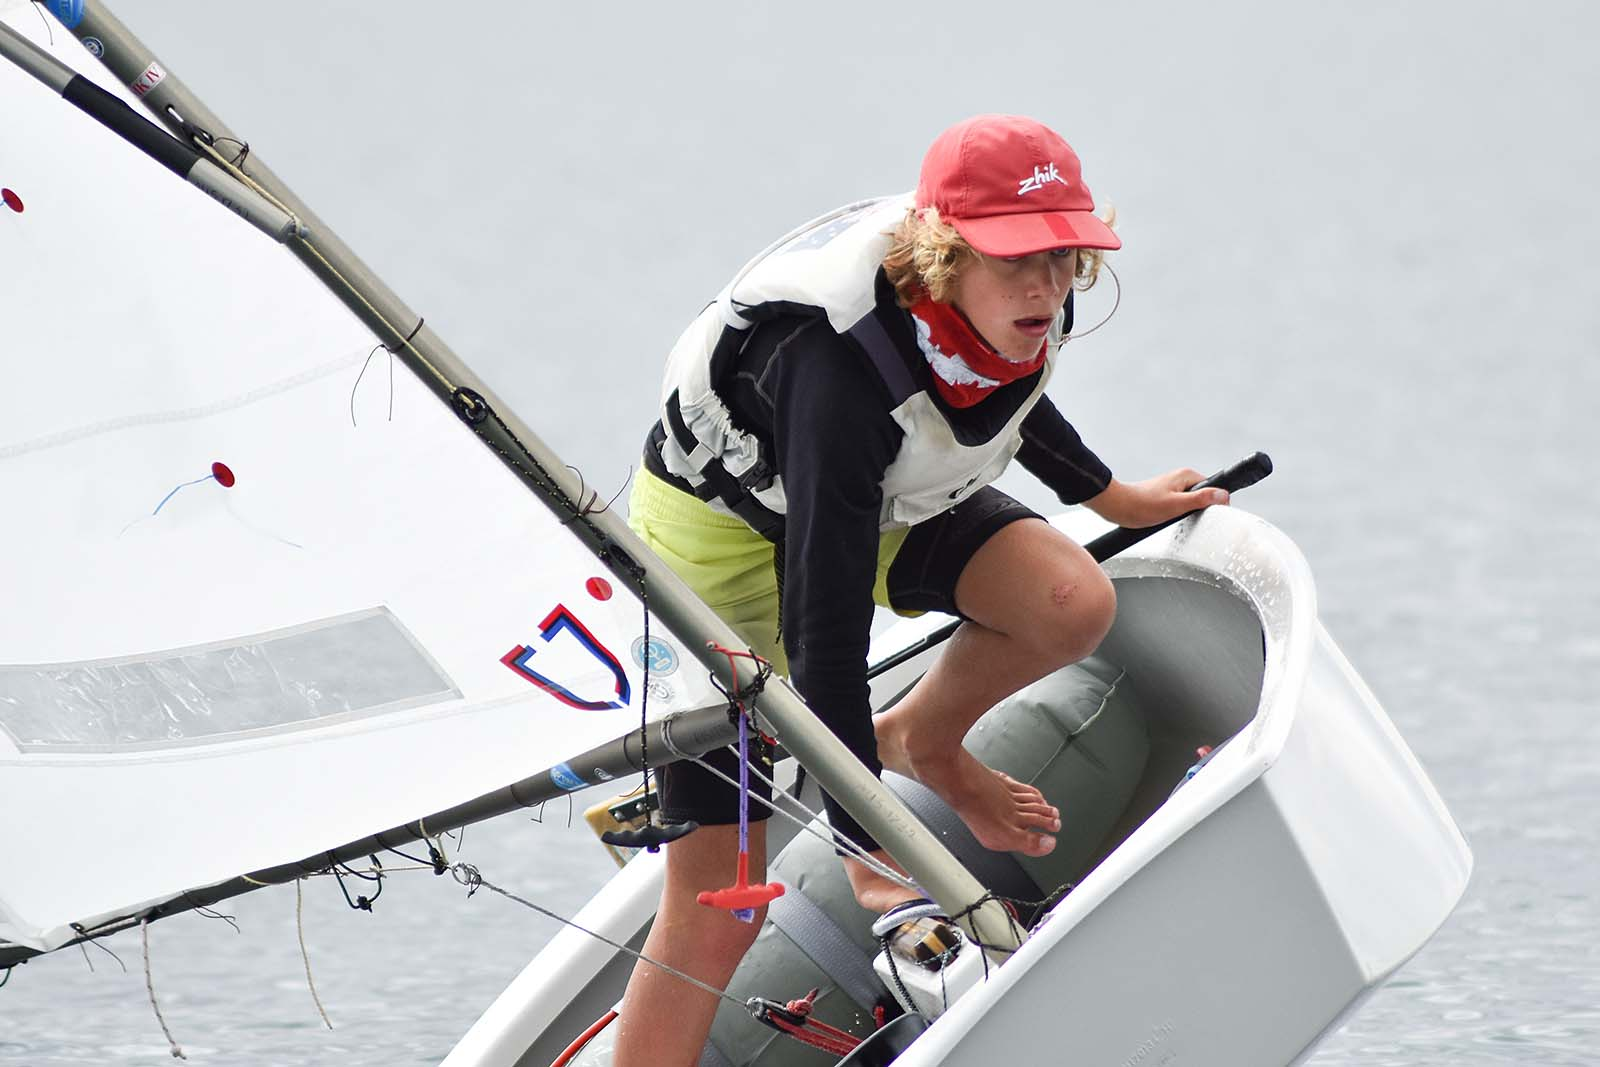 Jonas Barrett finished fifth overall in the Open Fleet. Photos: Down Under Sail